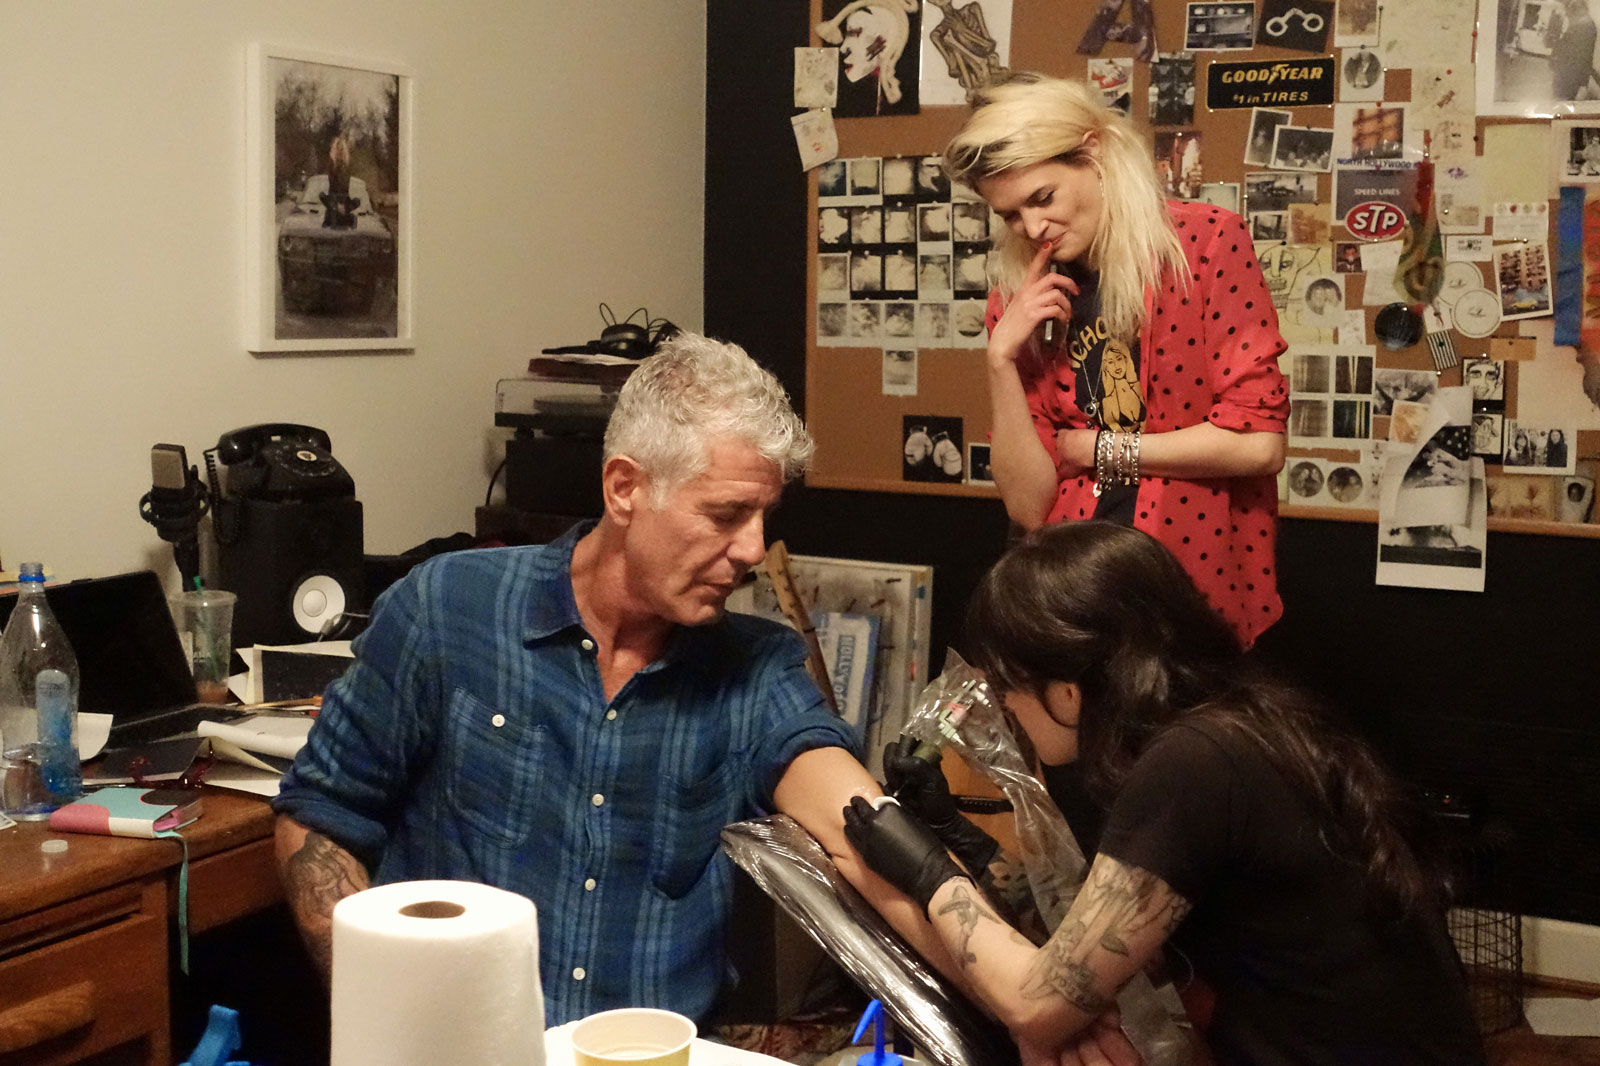 Bourdain Eats Grits and Gets a Tattoo in 'Parts Unknown' in Nashville